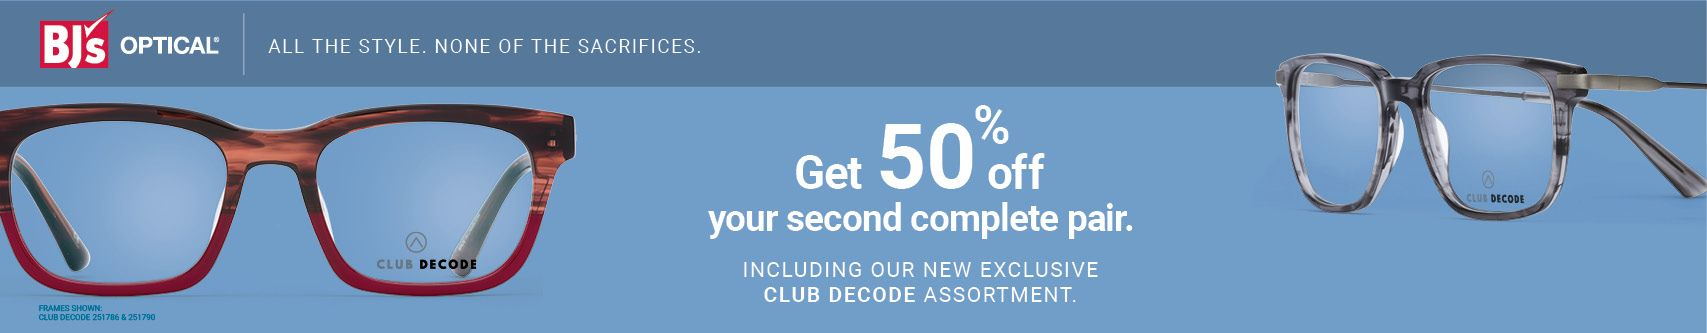 Get 50% off second complete pair.